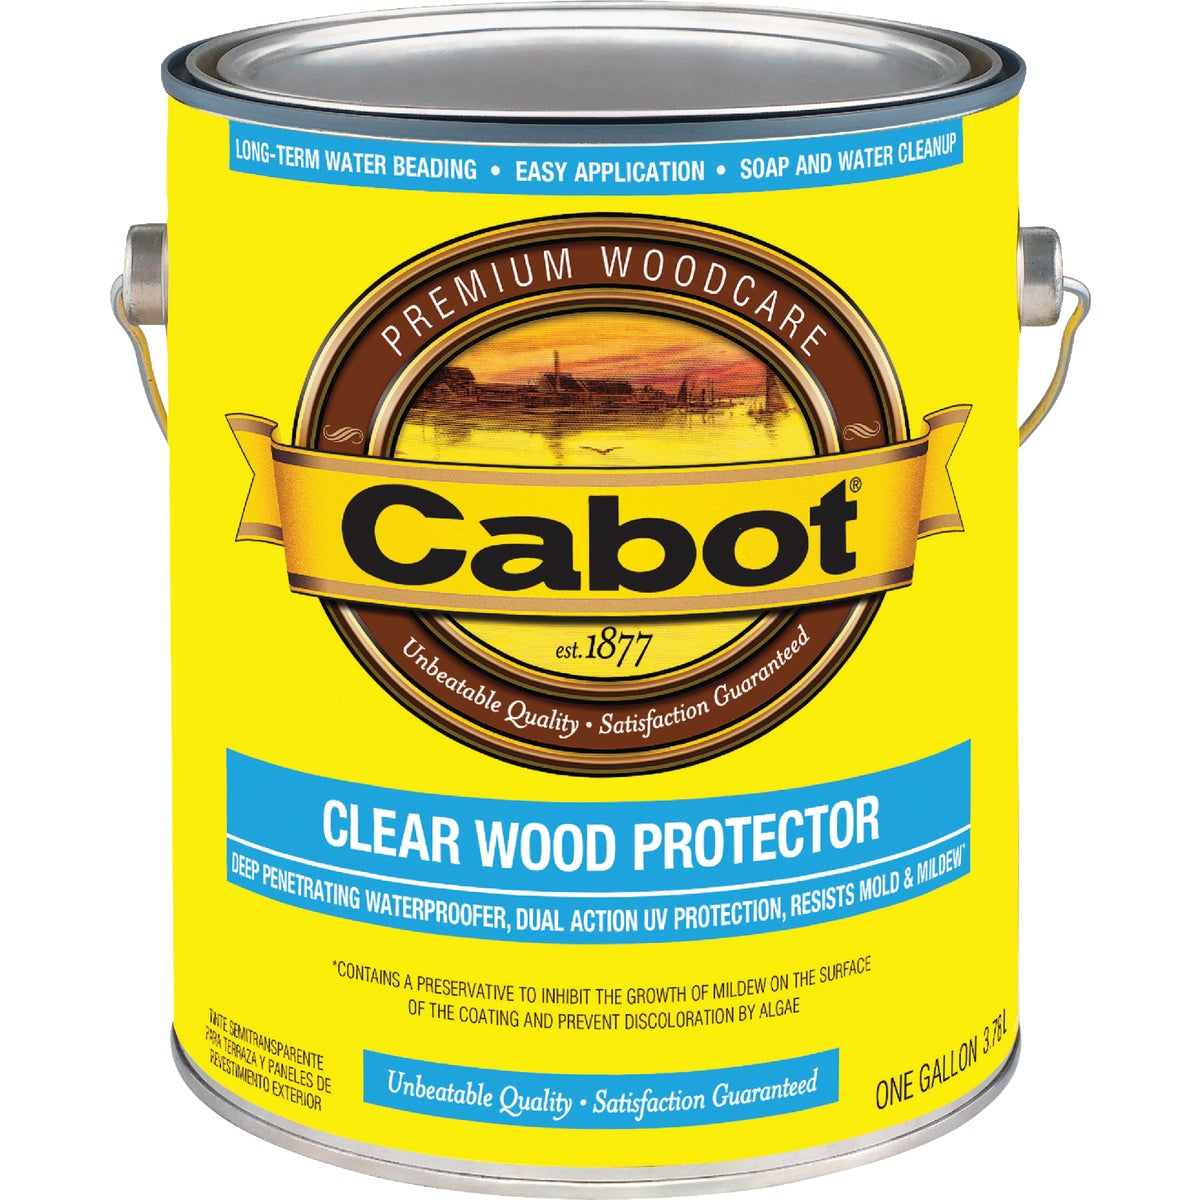 CLEAR WOOD PROTECTOR - 140.0002101.007 by Valspar Corp